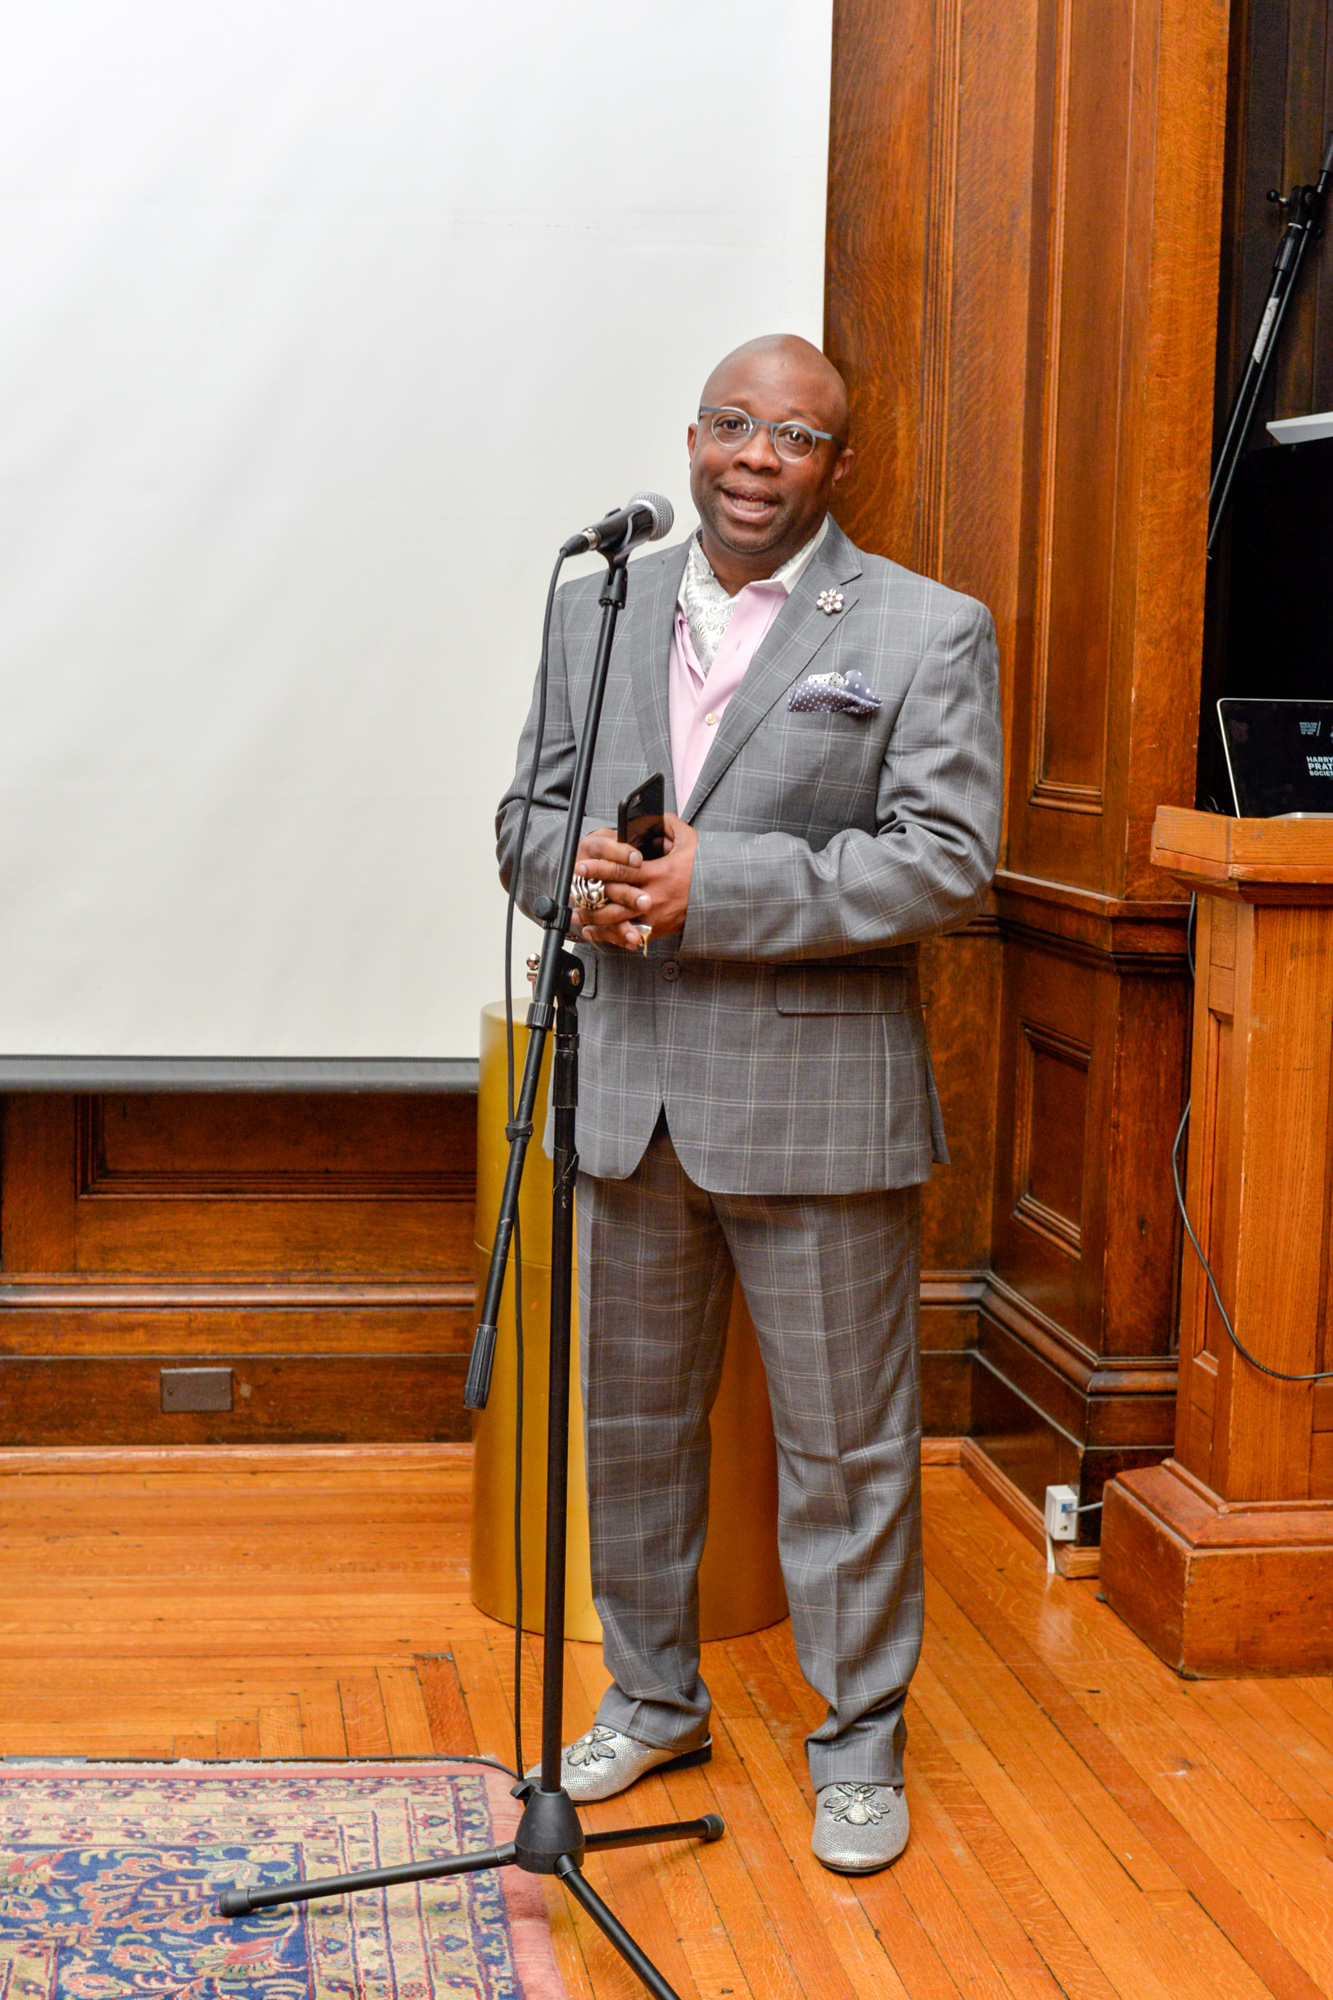 Clyde Johnson, Associate Dean of Identity and Inclusion